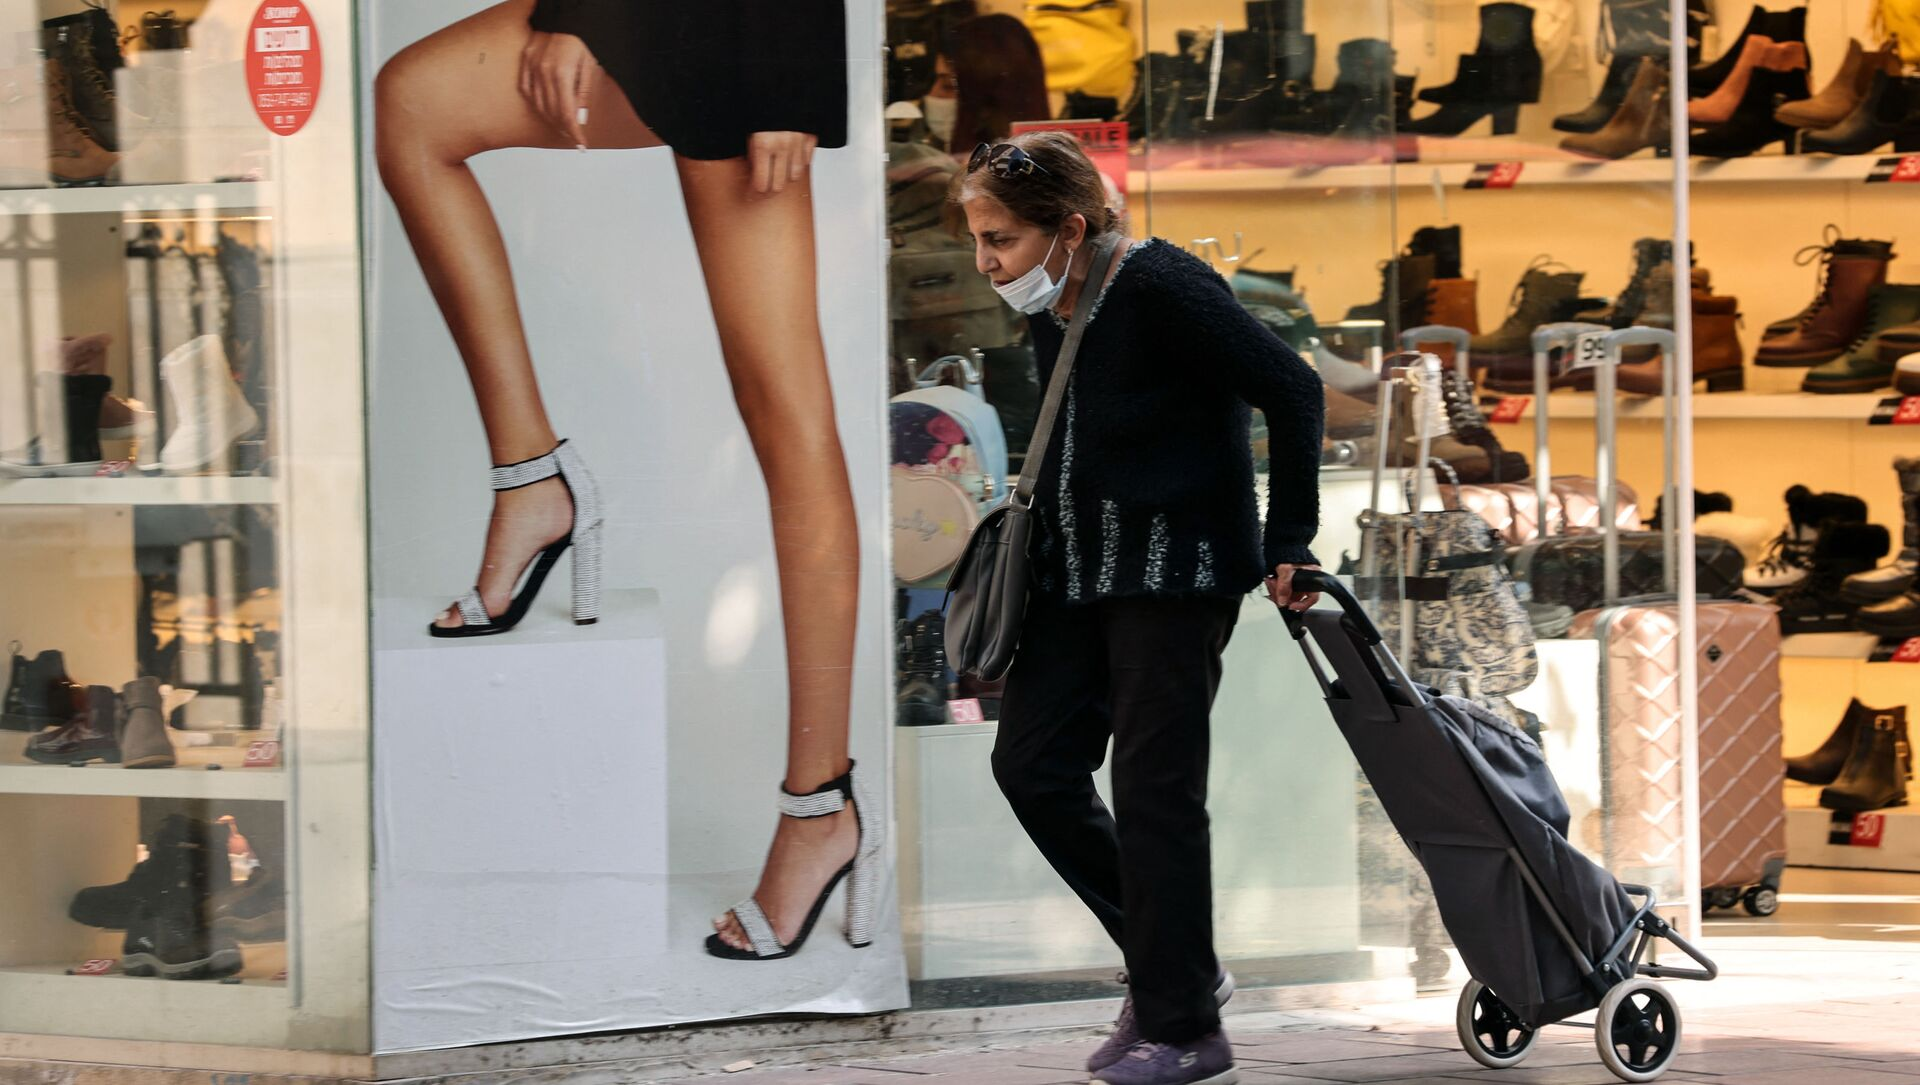 A woman walks past an open shoe store in the Israeli coastal city of Tel Aviv on February 7, 2021, following the lifting of a nationwide lockdown due to the COVID-19 pandemic.  - Sputnik International, 1920, 15.06.2021